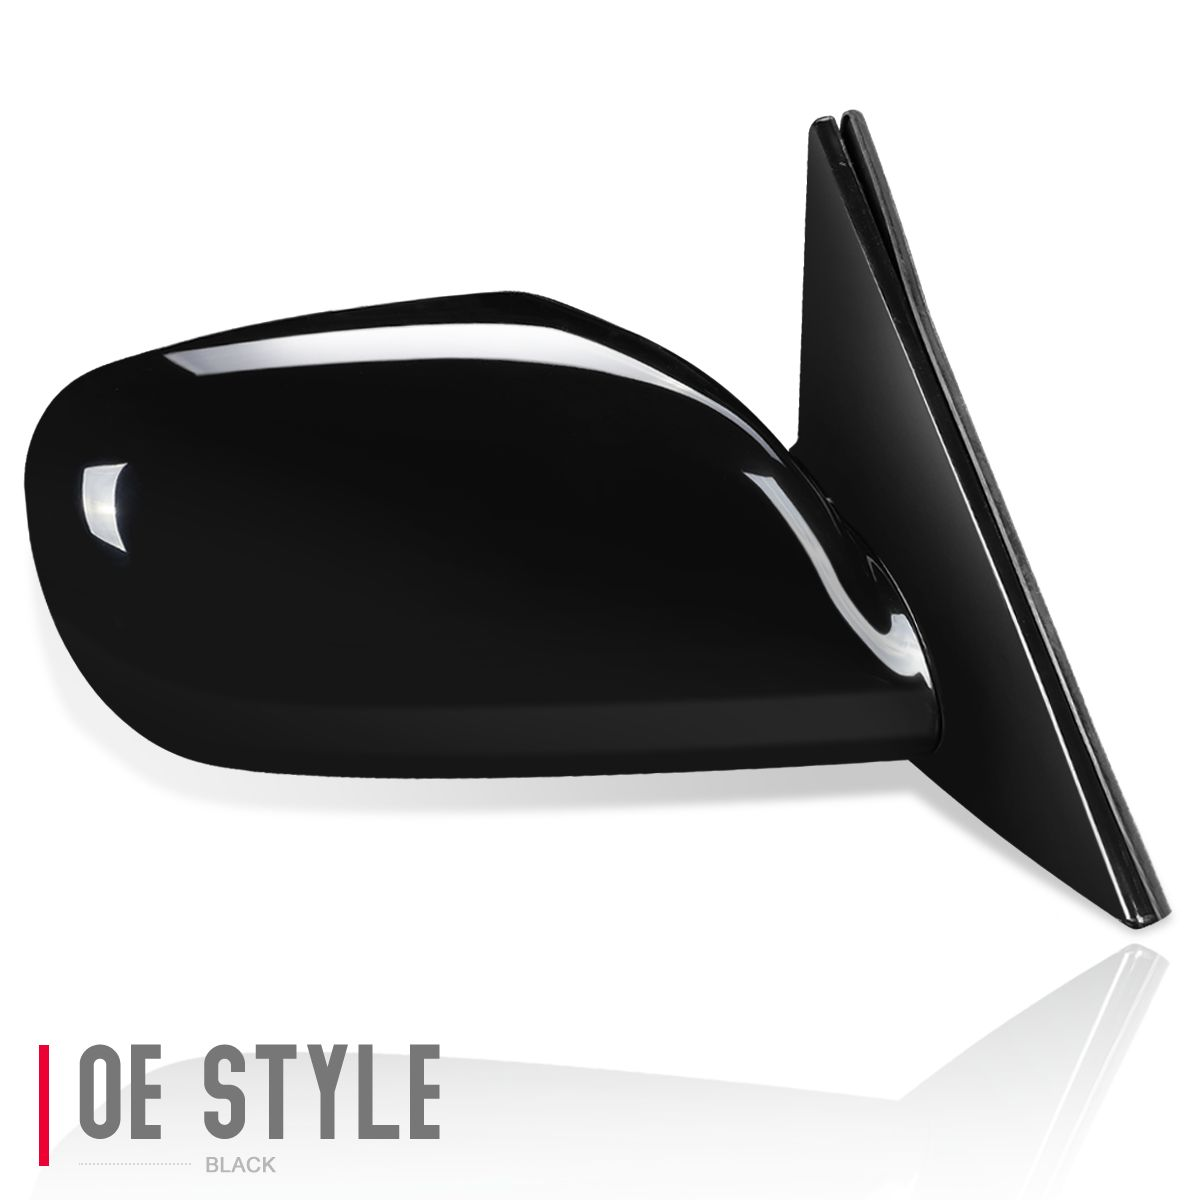 New Passenger Side Mirror For Toyota Camry 2002-2006 TO1321219